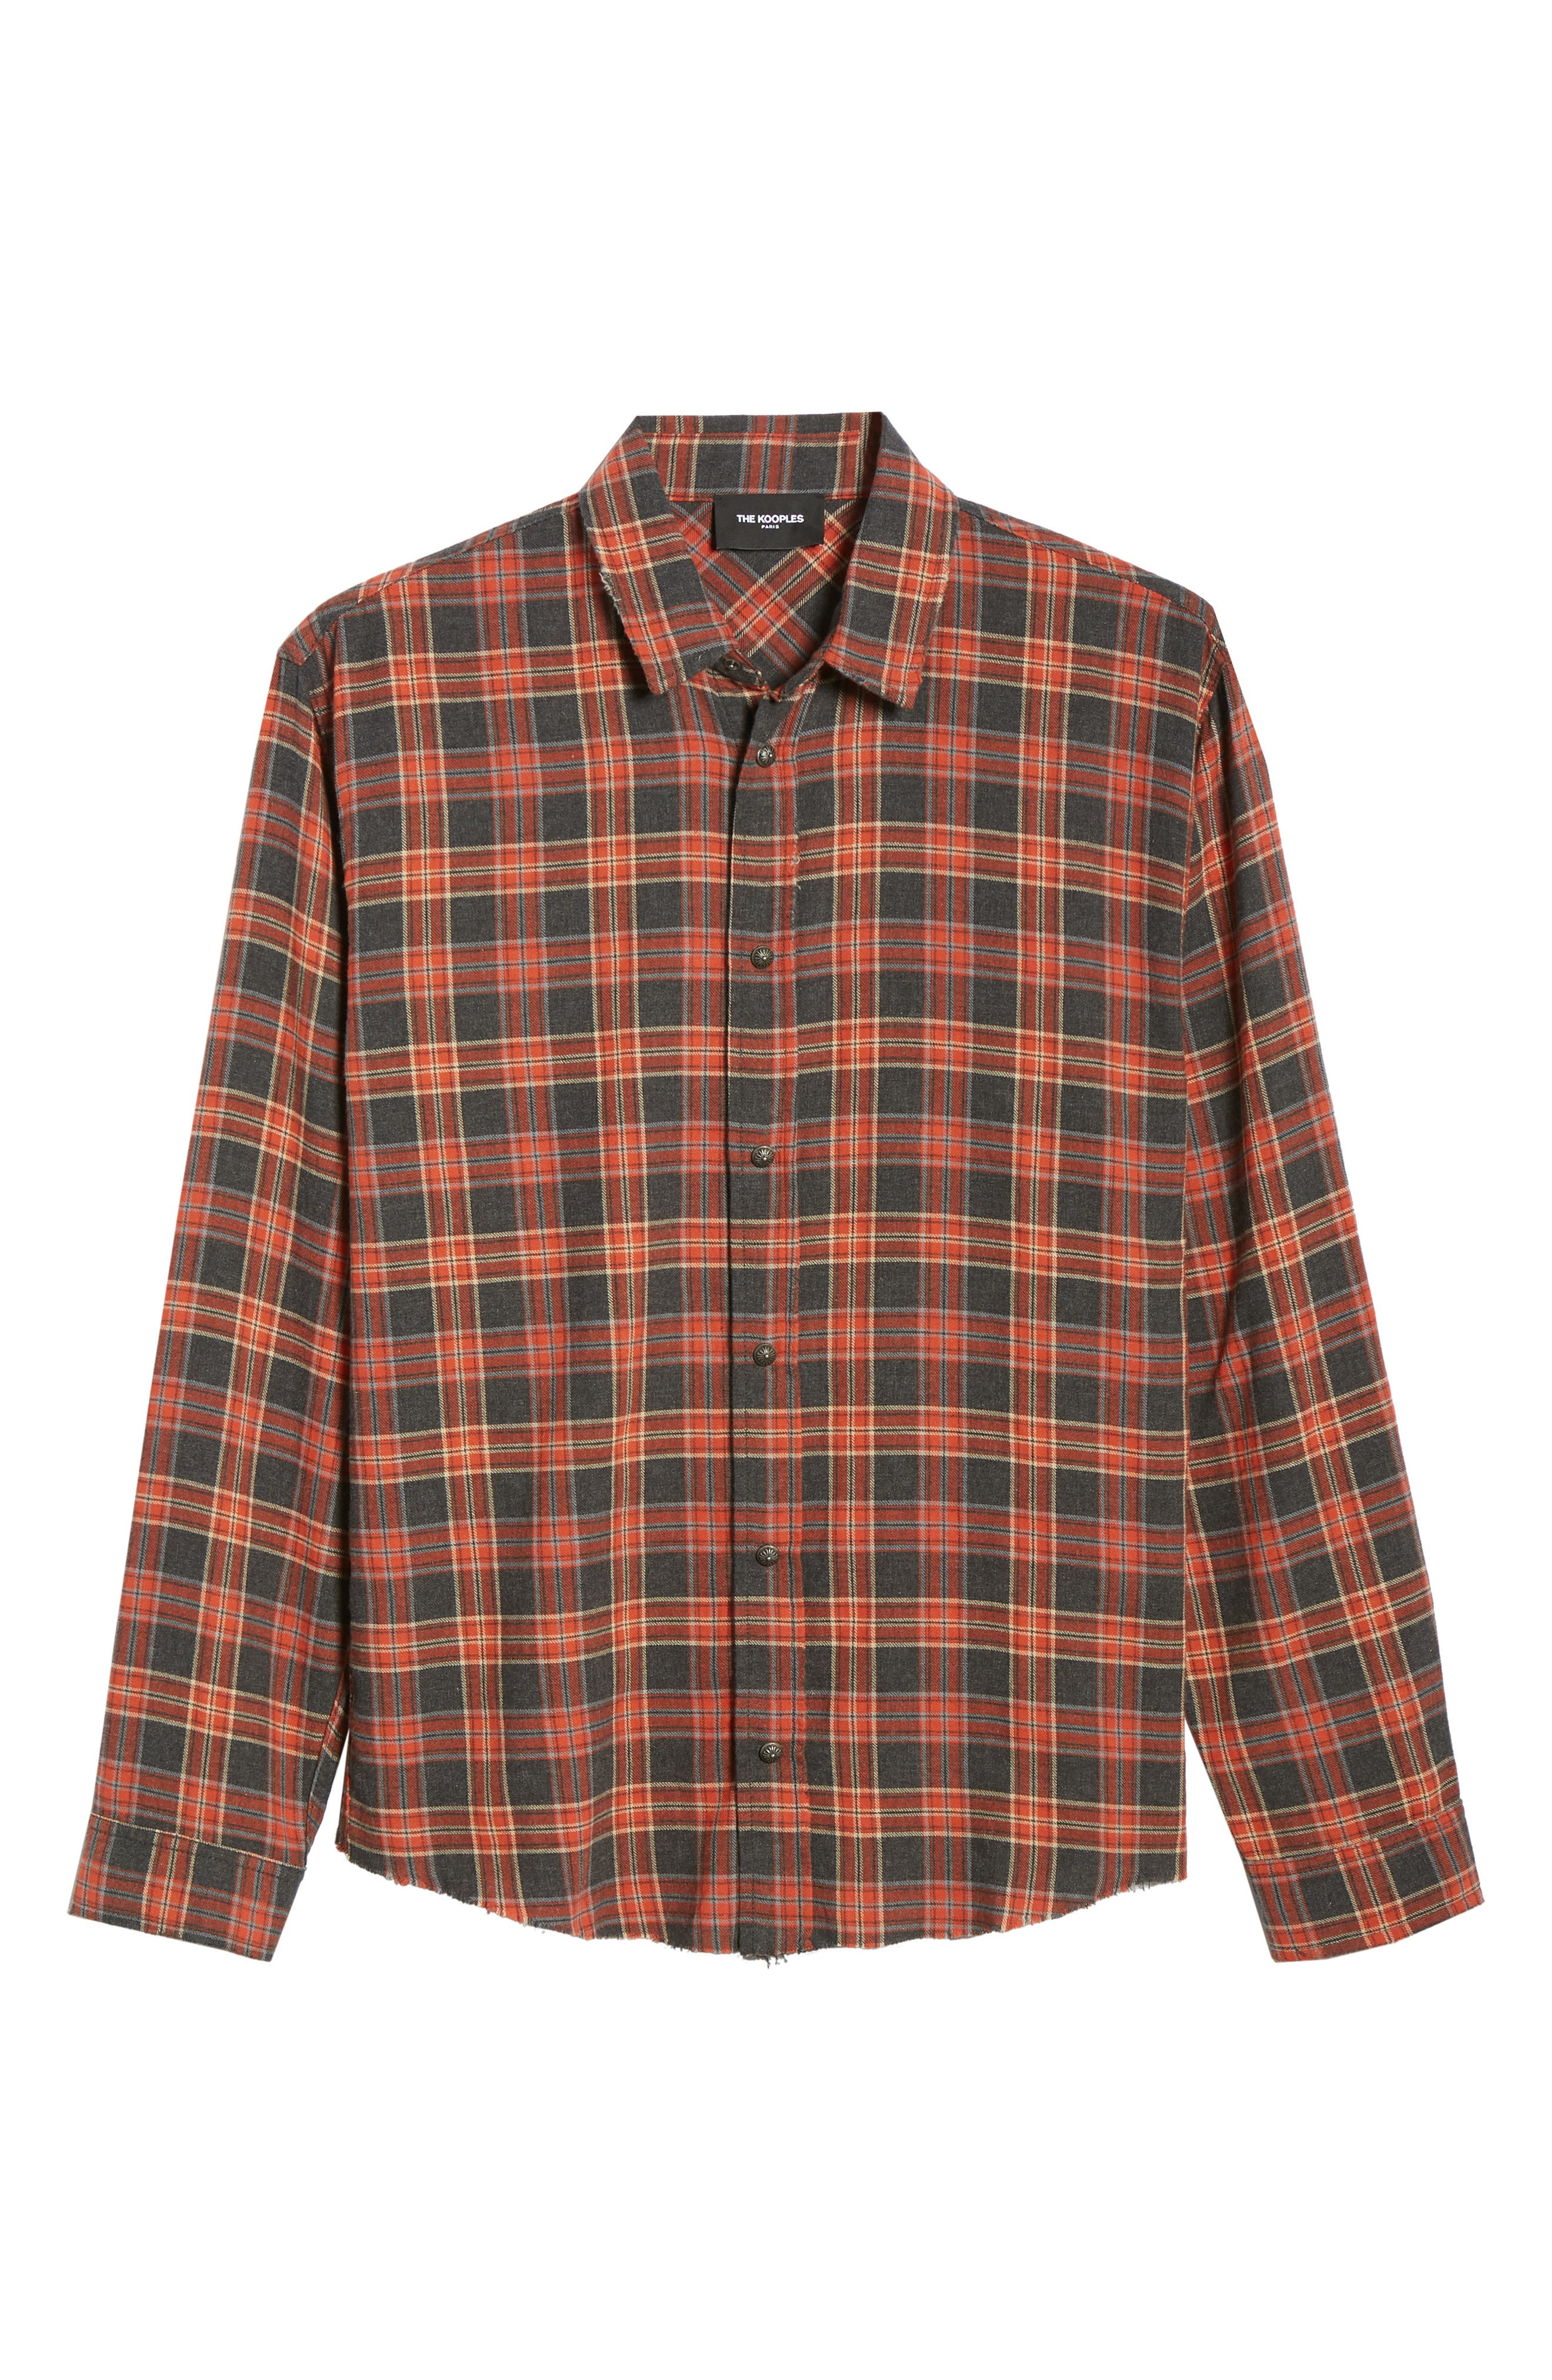 THE KOOPLES, Plaid Regular Fit Flannel Shirt, Alternate thumbnail 5, color, 800